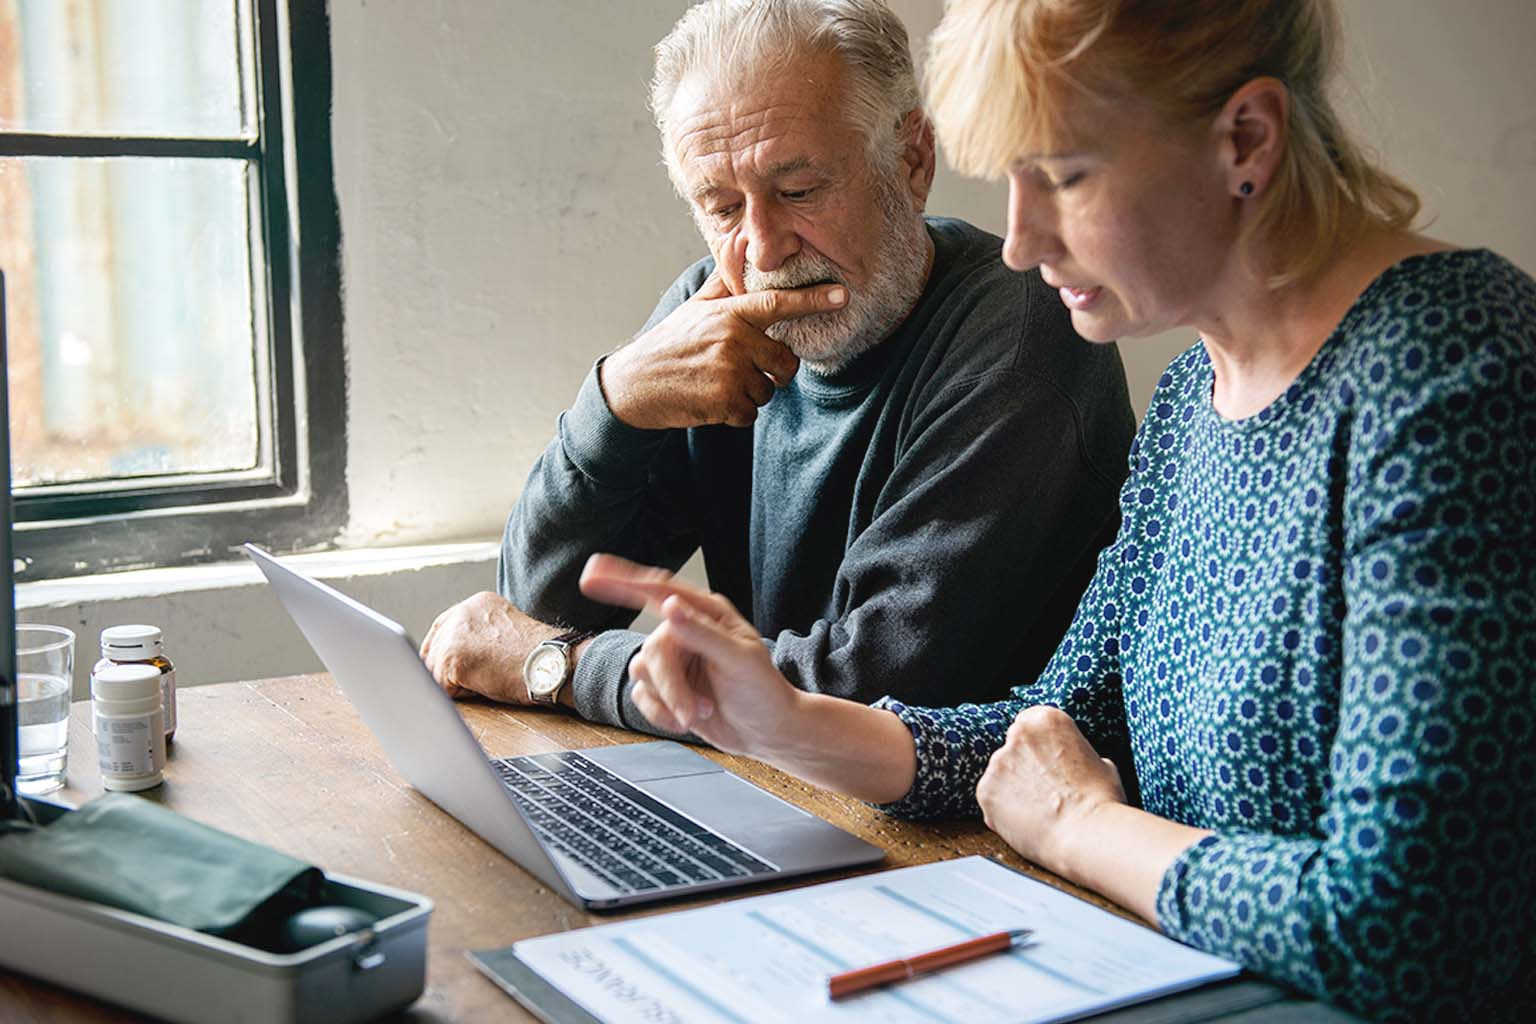 two people at kitchen table reviewing medication and information on laptop